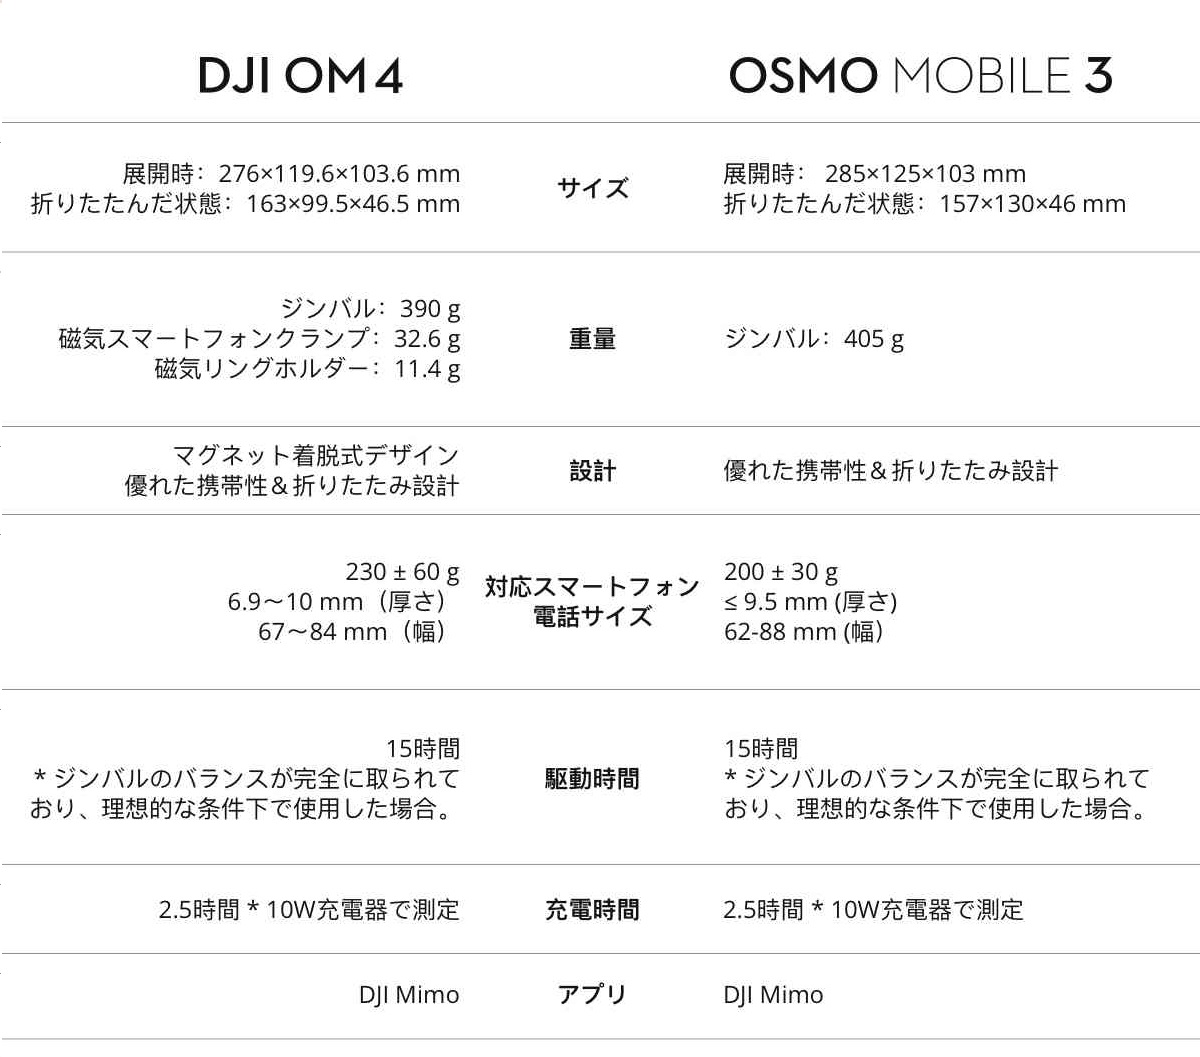 DJI OM4 vs. DJI Osmo Mobile 3